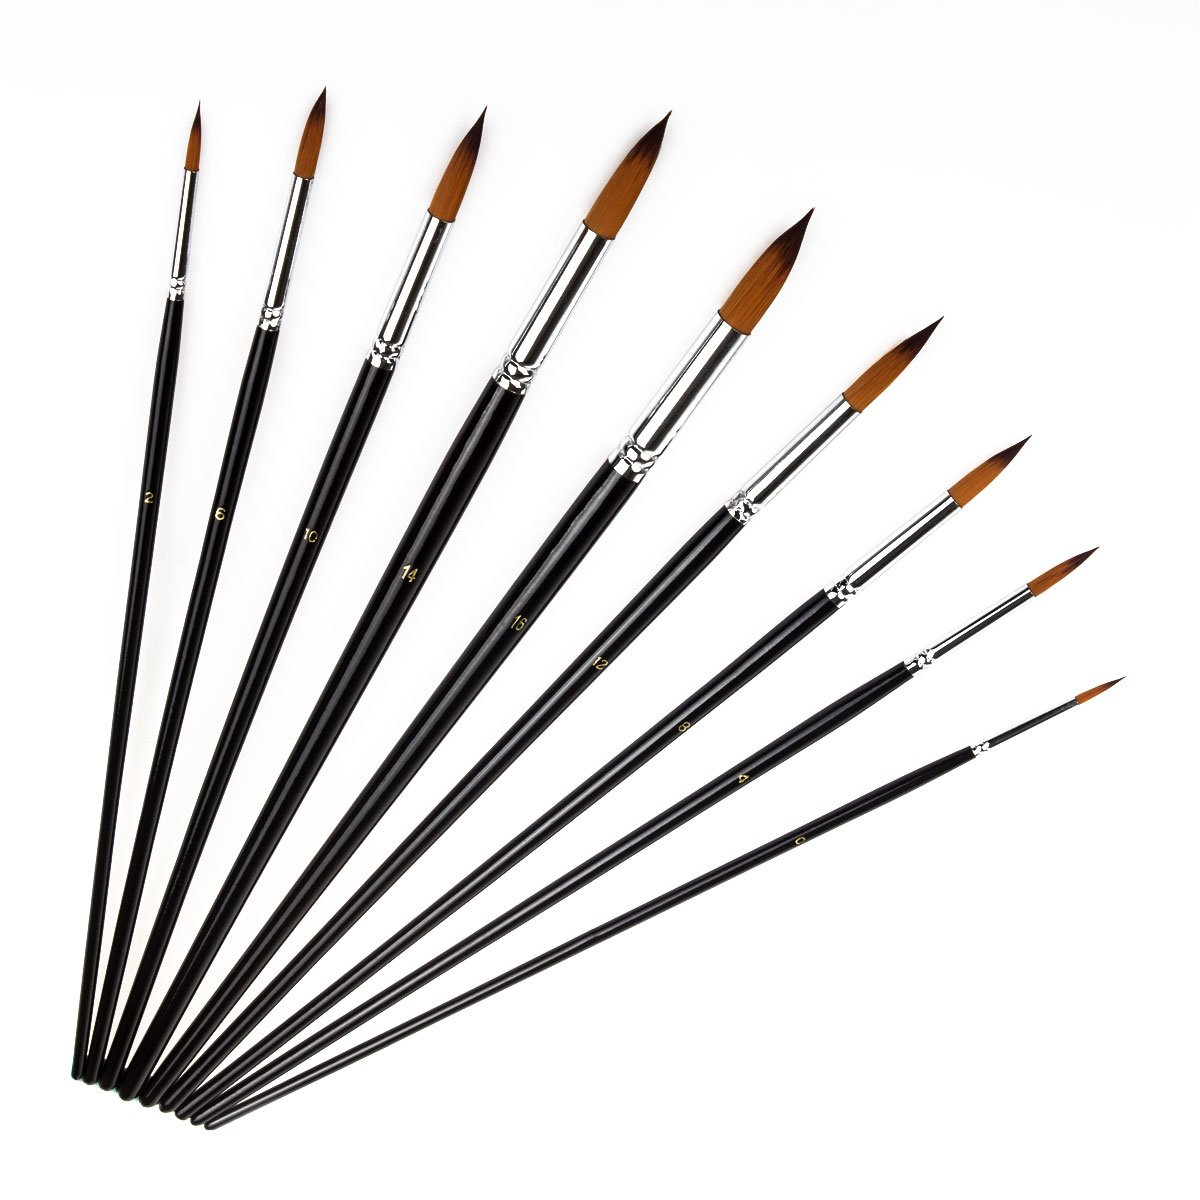 STARVAST Painting Brushes, 9pcs Professional Pointed-Round Nylon Hair Artist Acrylic Paint Brush Set for Watercolor /Oil / Acrylic / Crafts / Rock / Face Painting and Gouache-Black